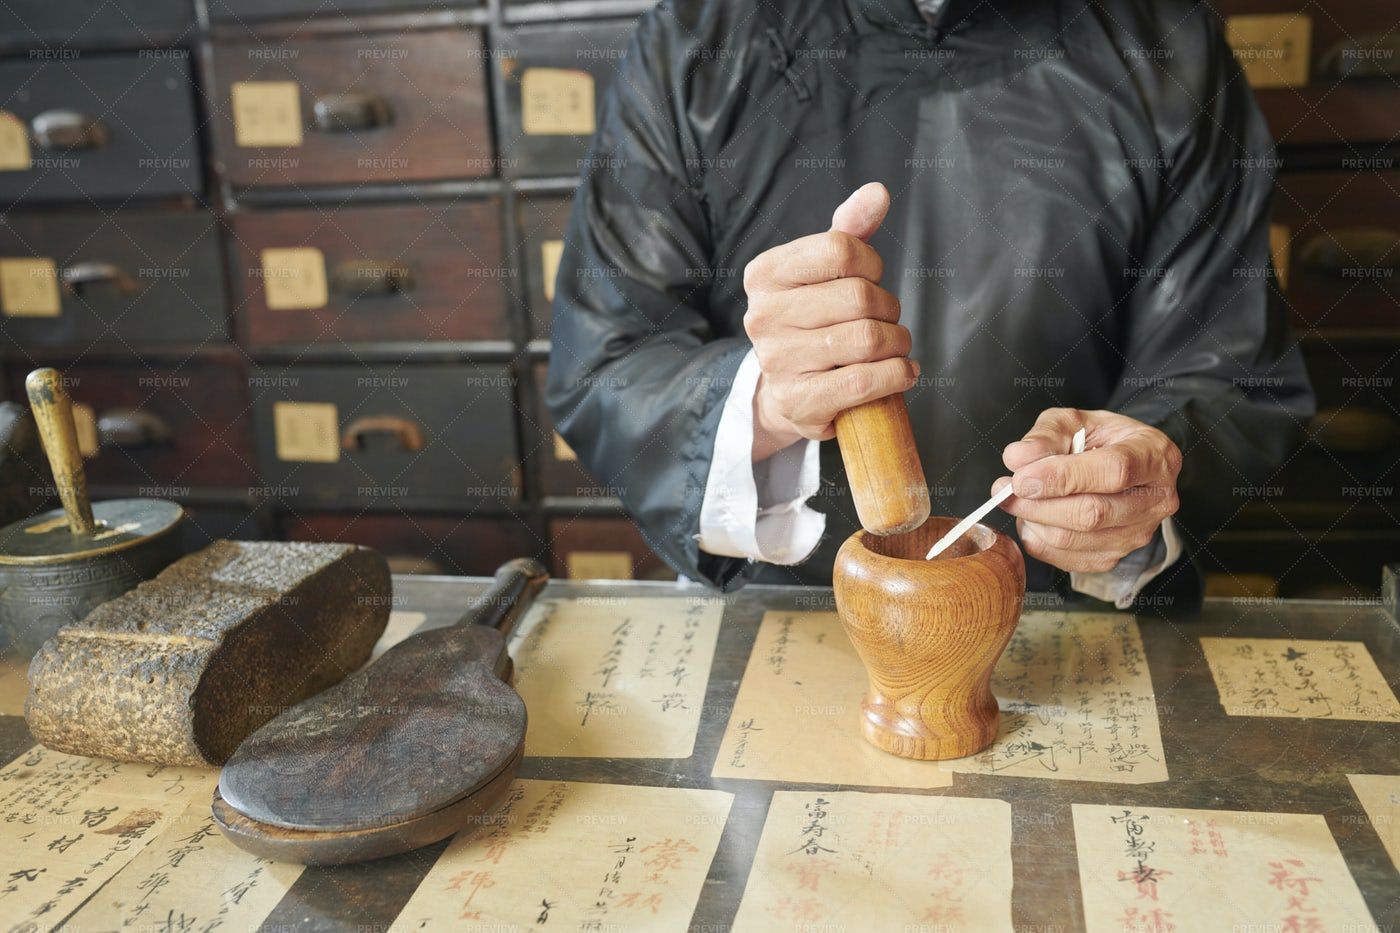 Apothecary Worker Using Pestle And: Stock Photos